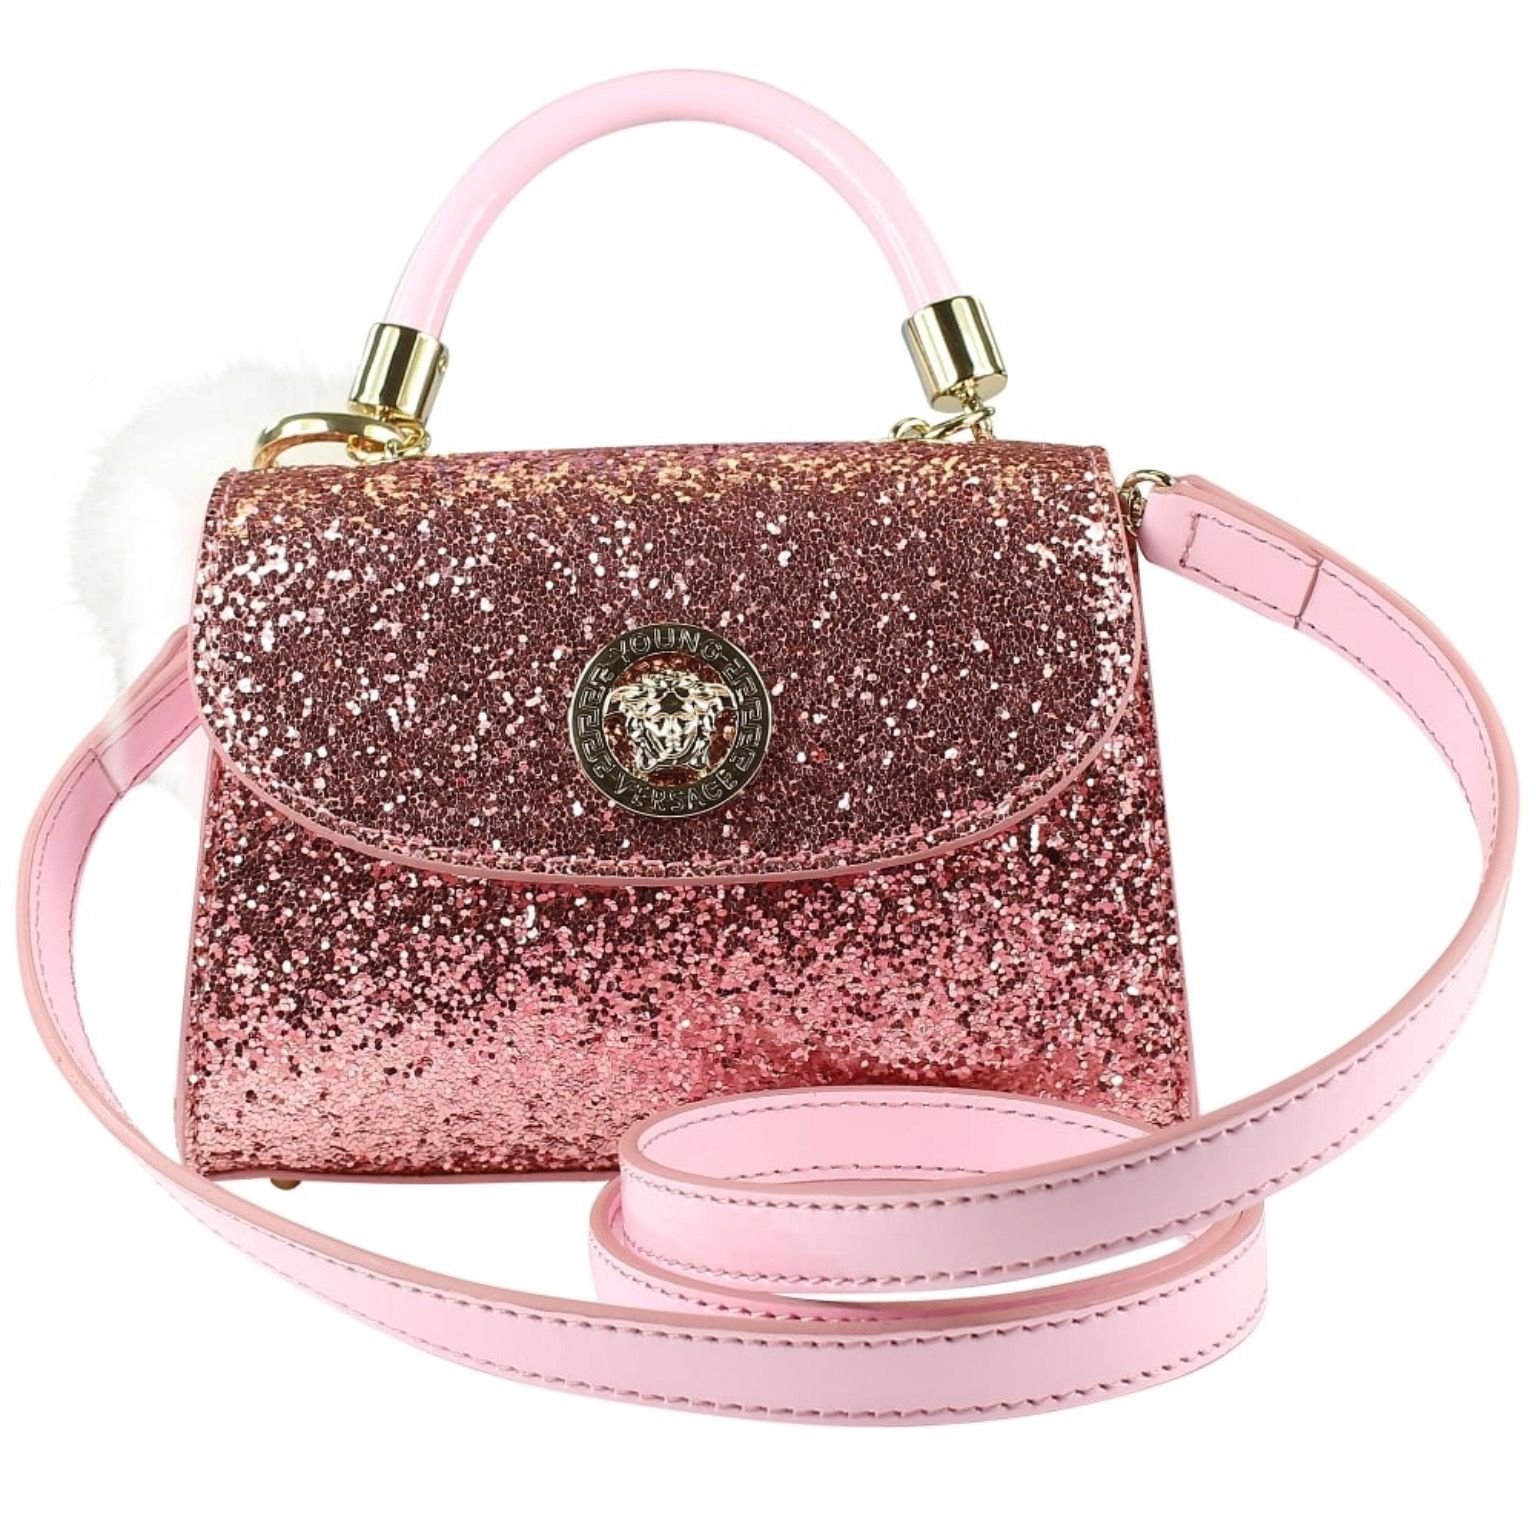 New Young Versace pink glitter bag SS17!  versace  youngversace  kids   fashion dd390dac6f5bf